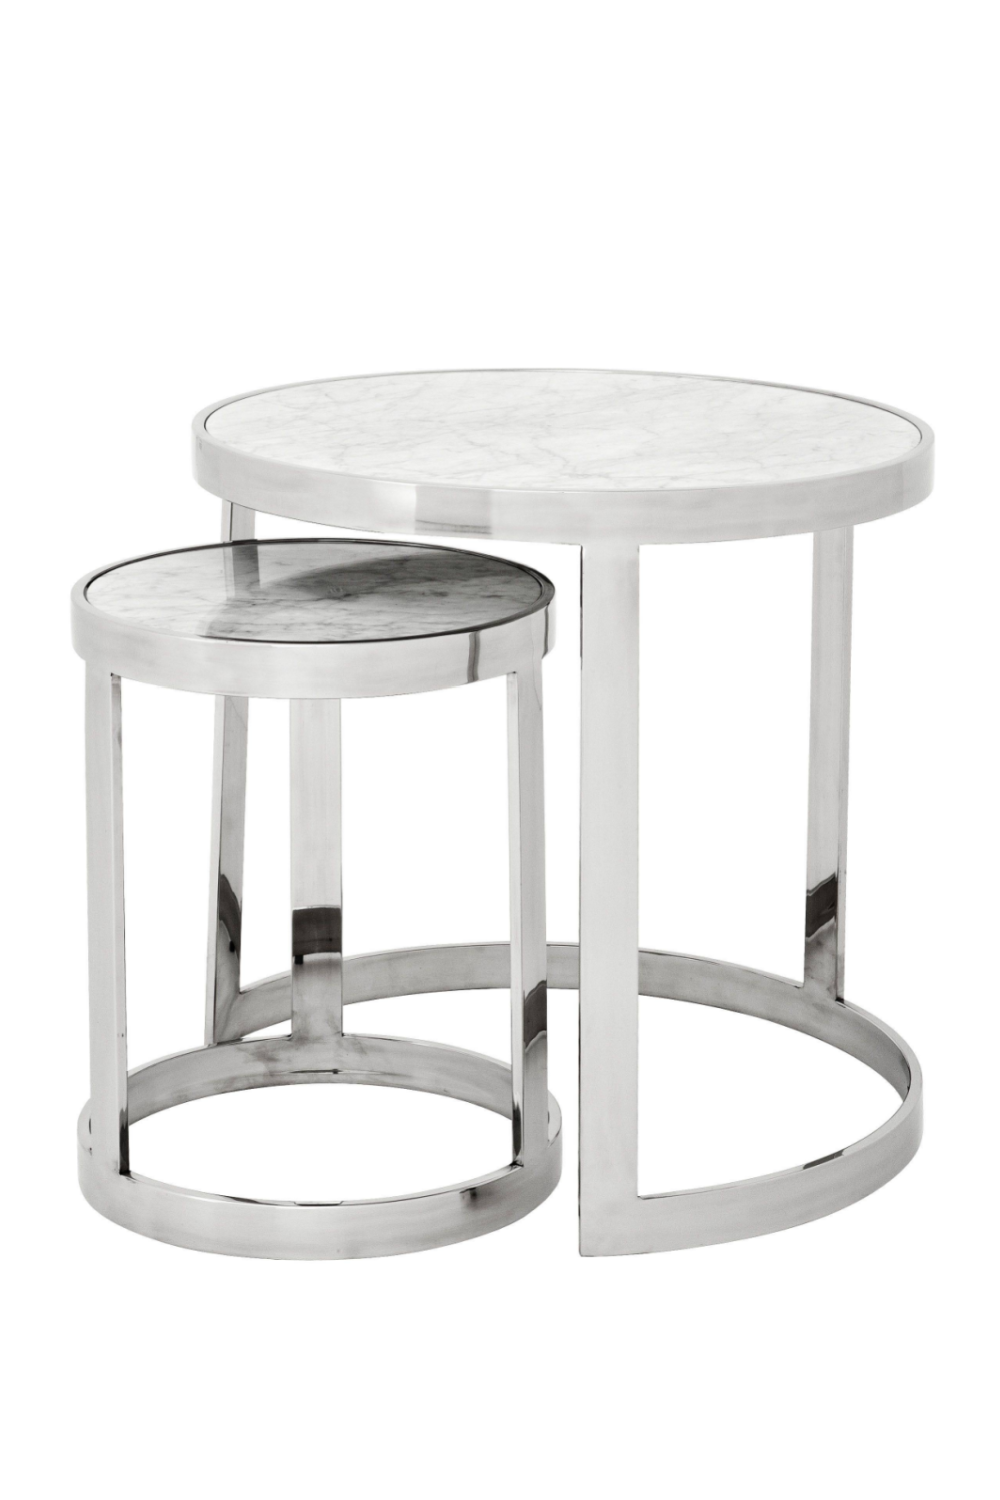 Nesting Side Table | Eichholtz Fletcher | #1 Eichholtz Online Retailer